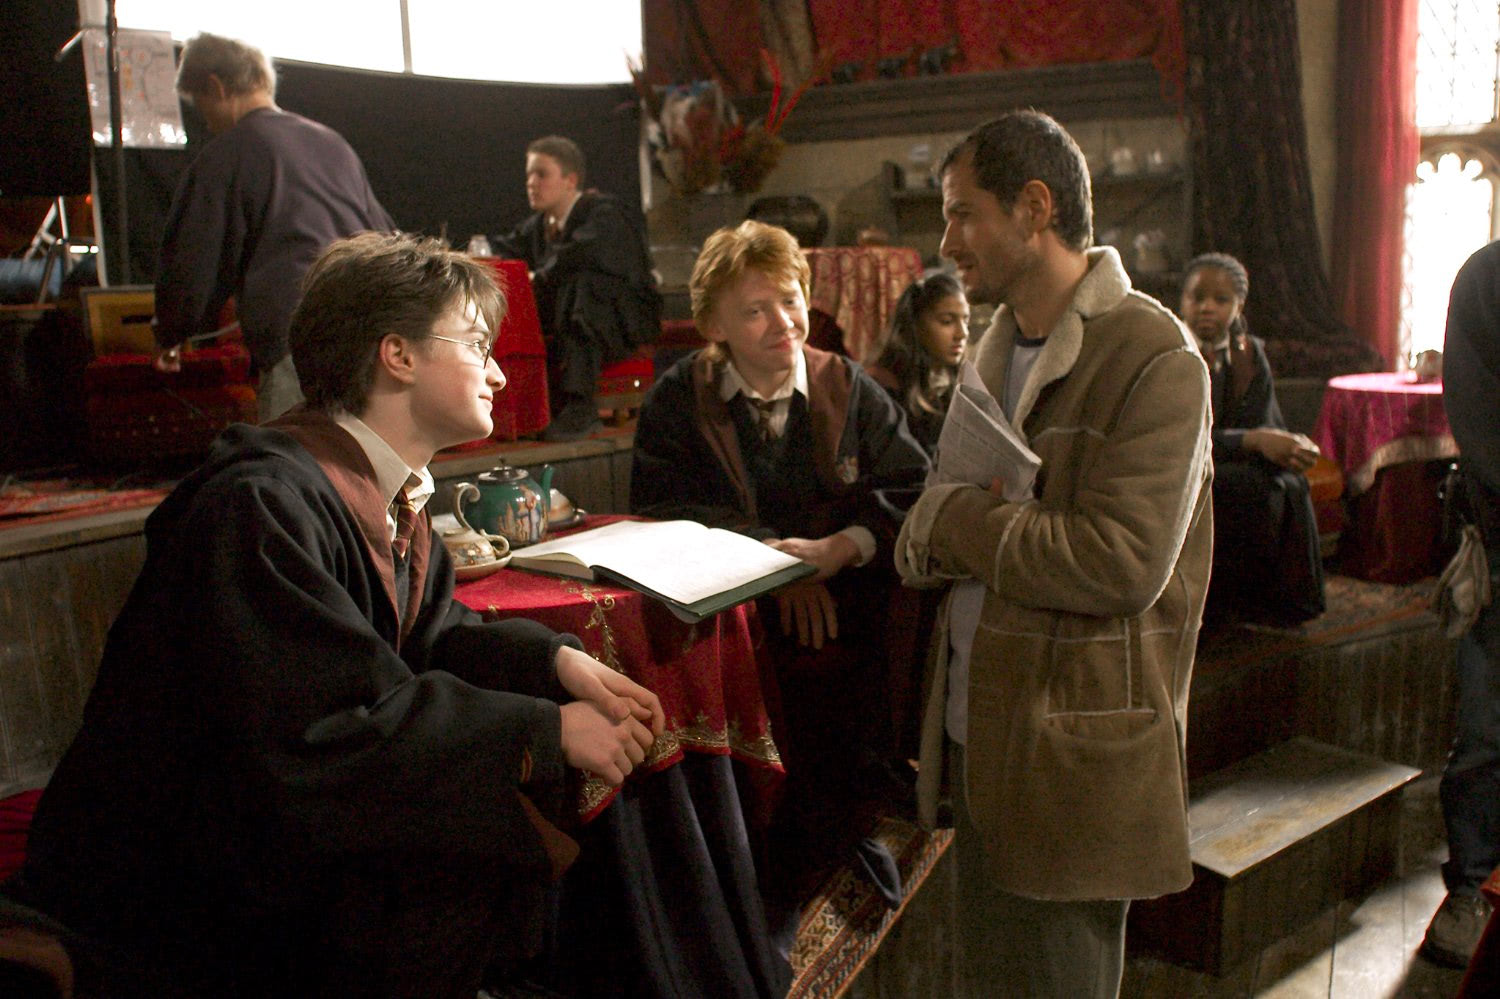 Dan Radcliffe, Rupert Grint and David Heyman